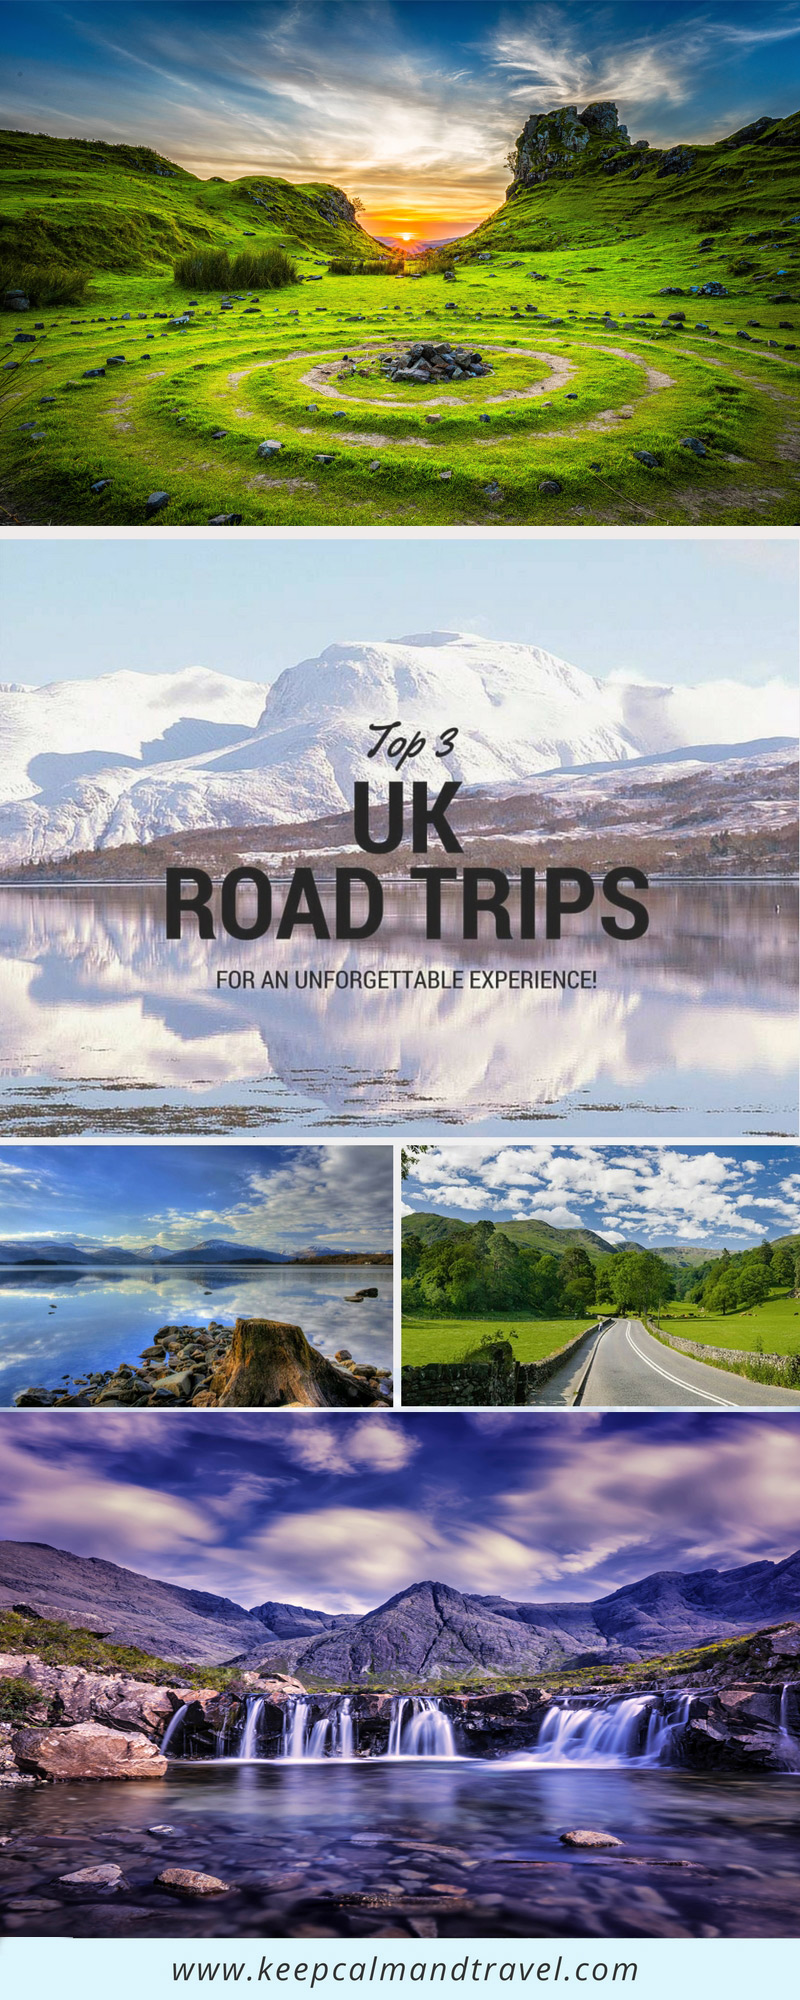 Road Trip in the UK anyone? Check out these 3 mind-blowing Itineraries!